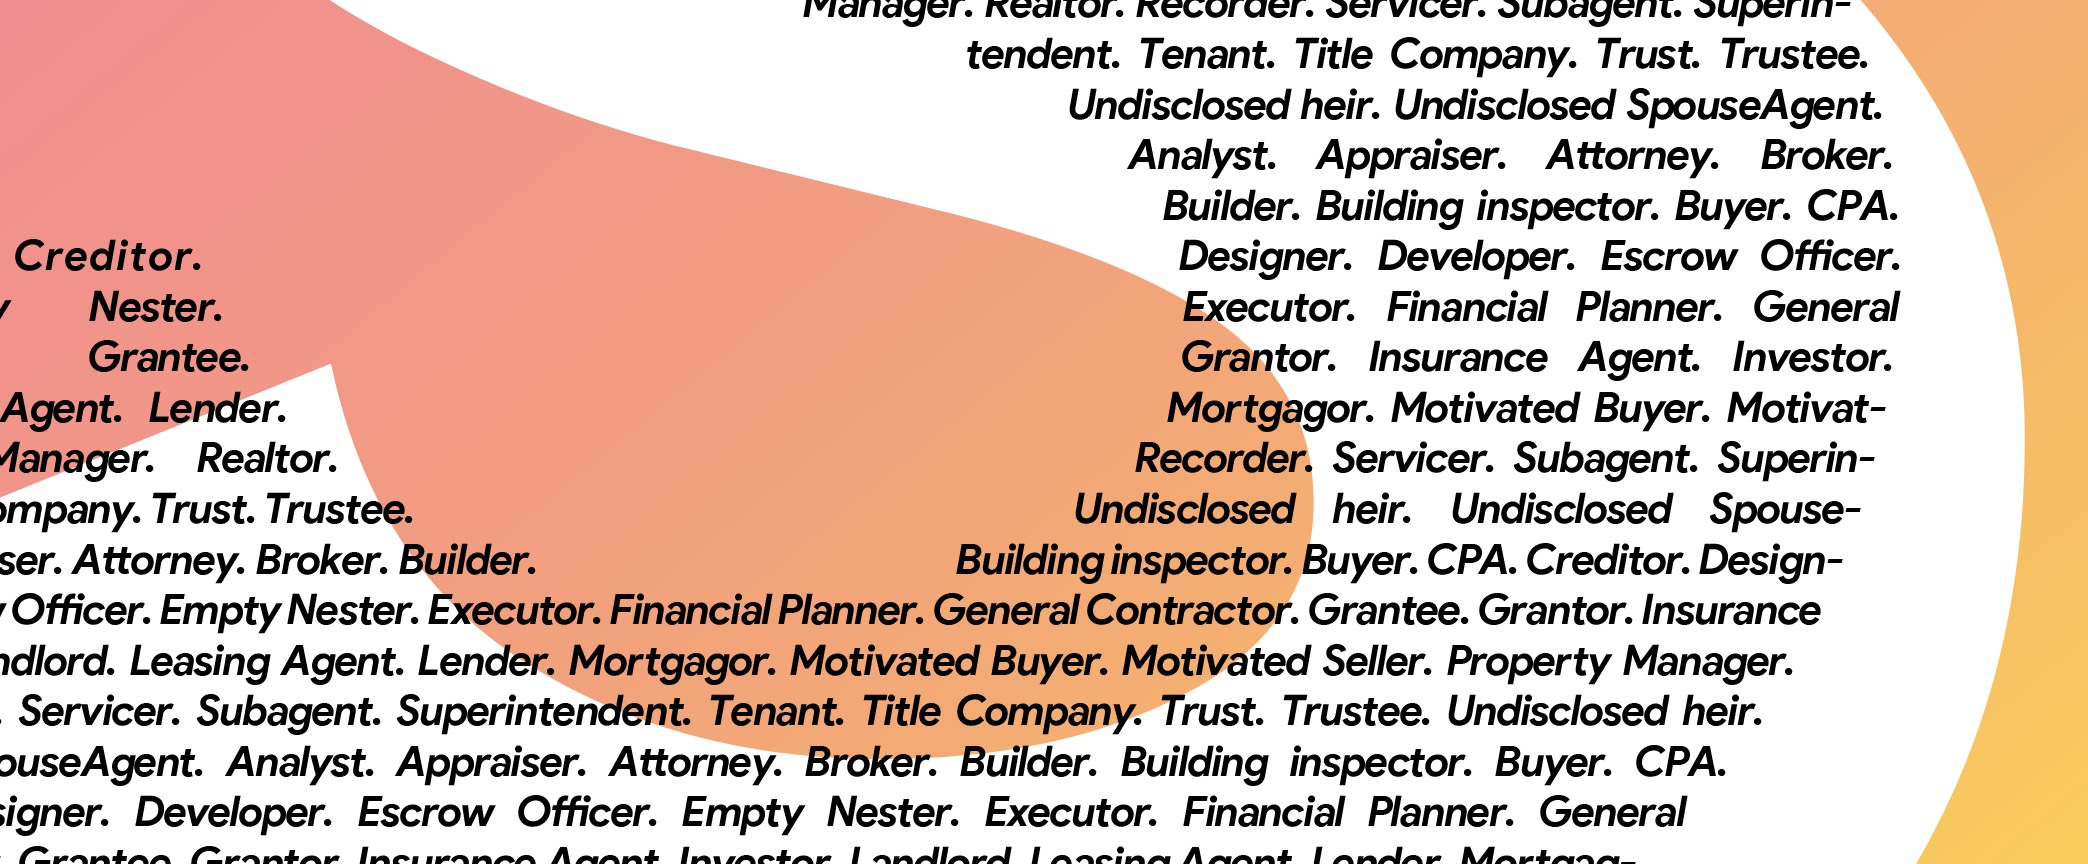 The Real Estate industry produces many individual with different roles and flavors.